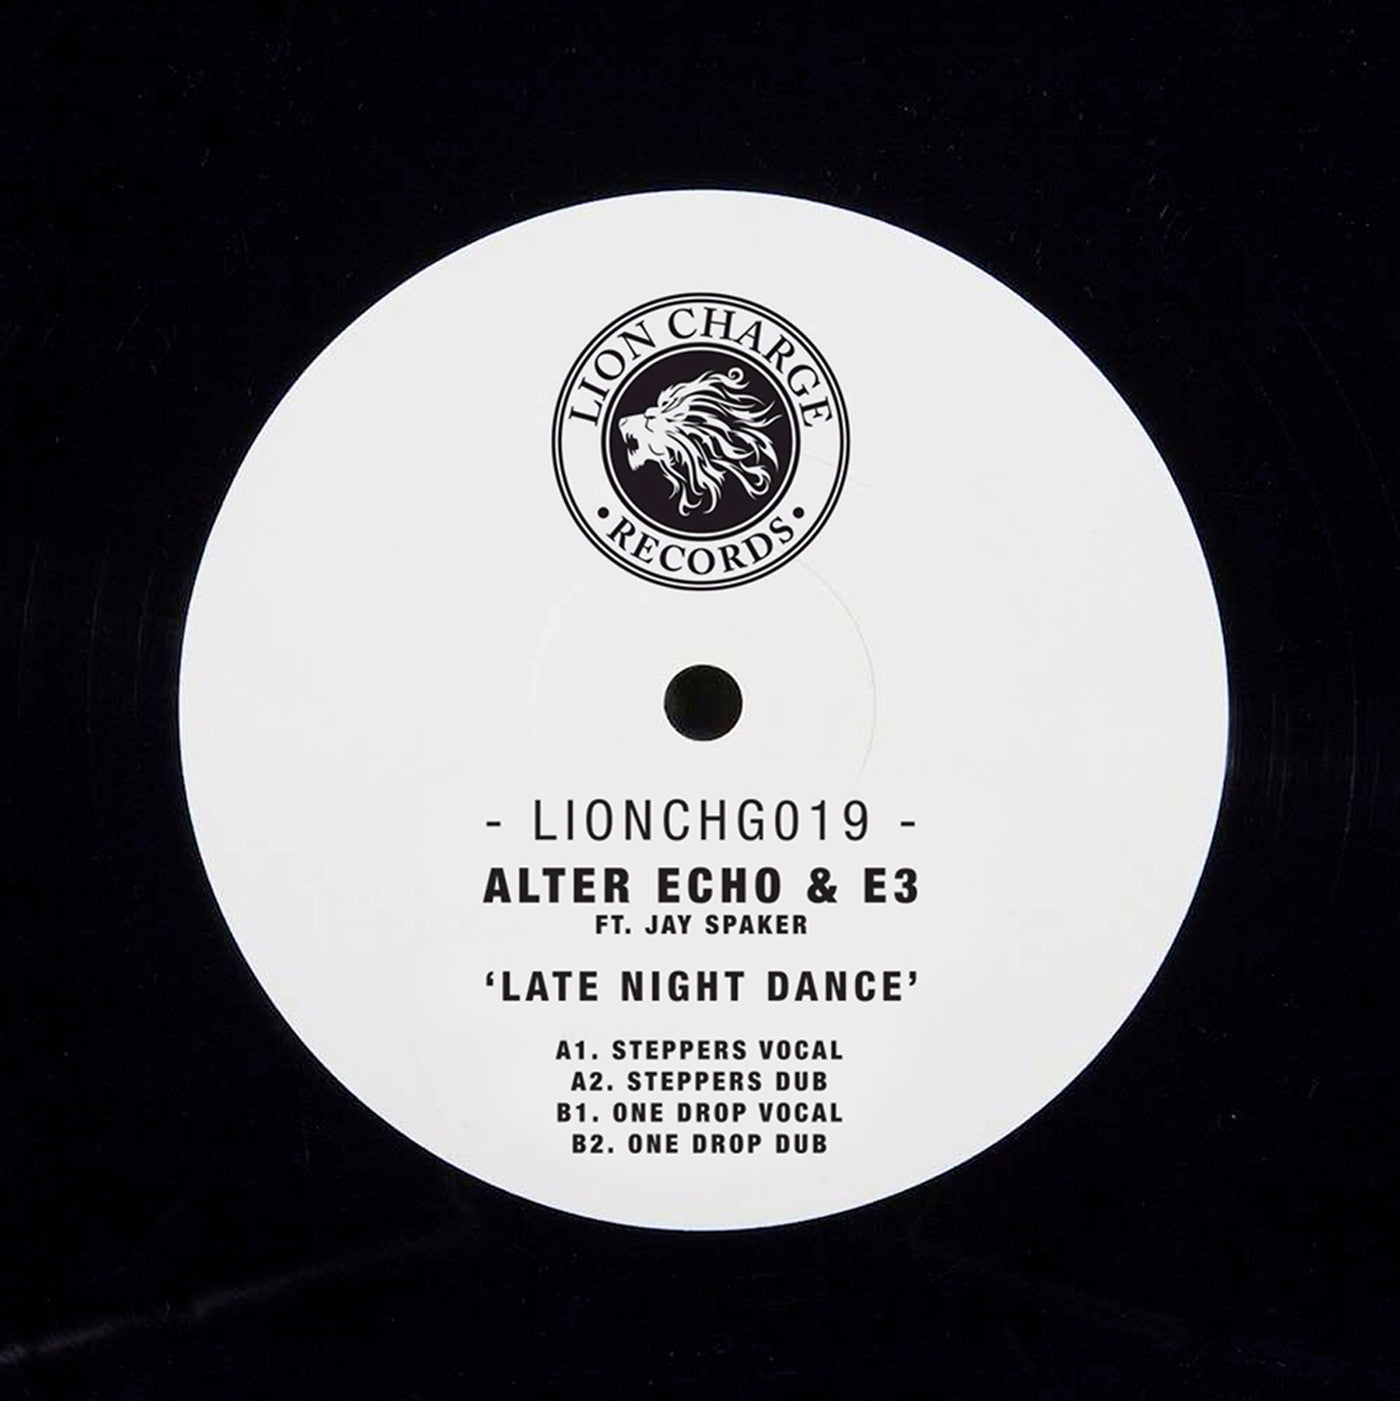 Alter Echo & E3 - Late Night Dance (feat. Jay Spaker)